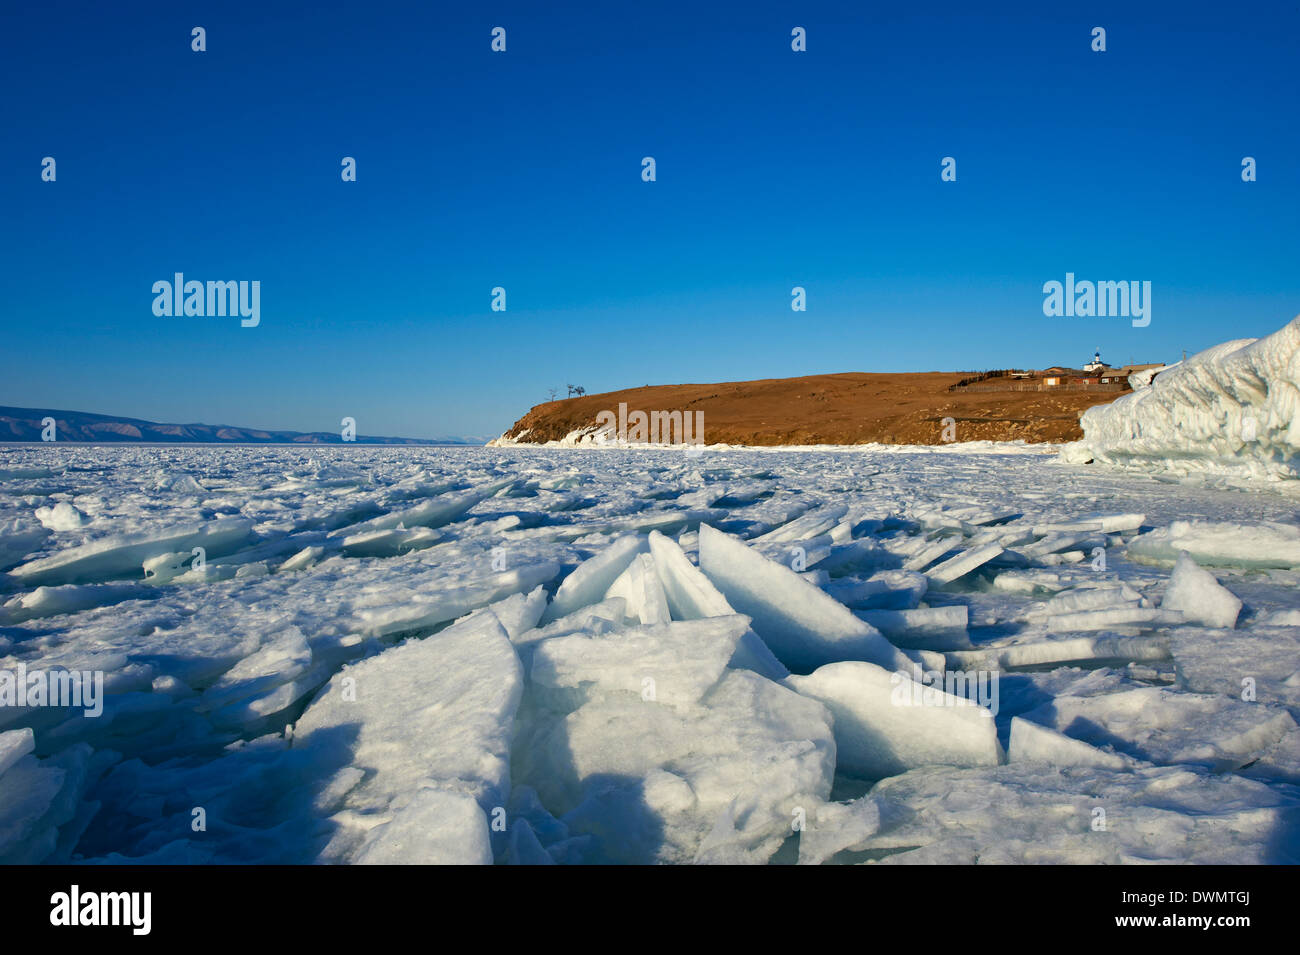 Maloe More (Little Sea), frozen lake during winter, Olkhon island, Lake Baikal, UNESCO Site, Irkutsk Oblast, Siberia, Russia - Stock Image